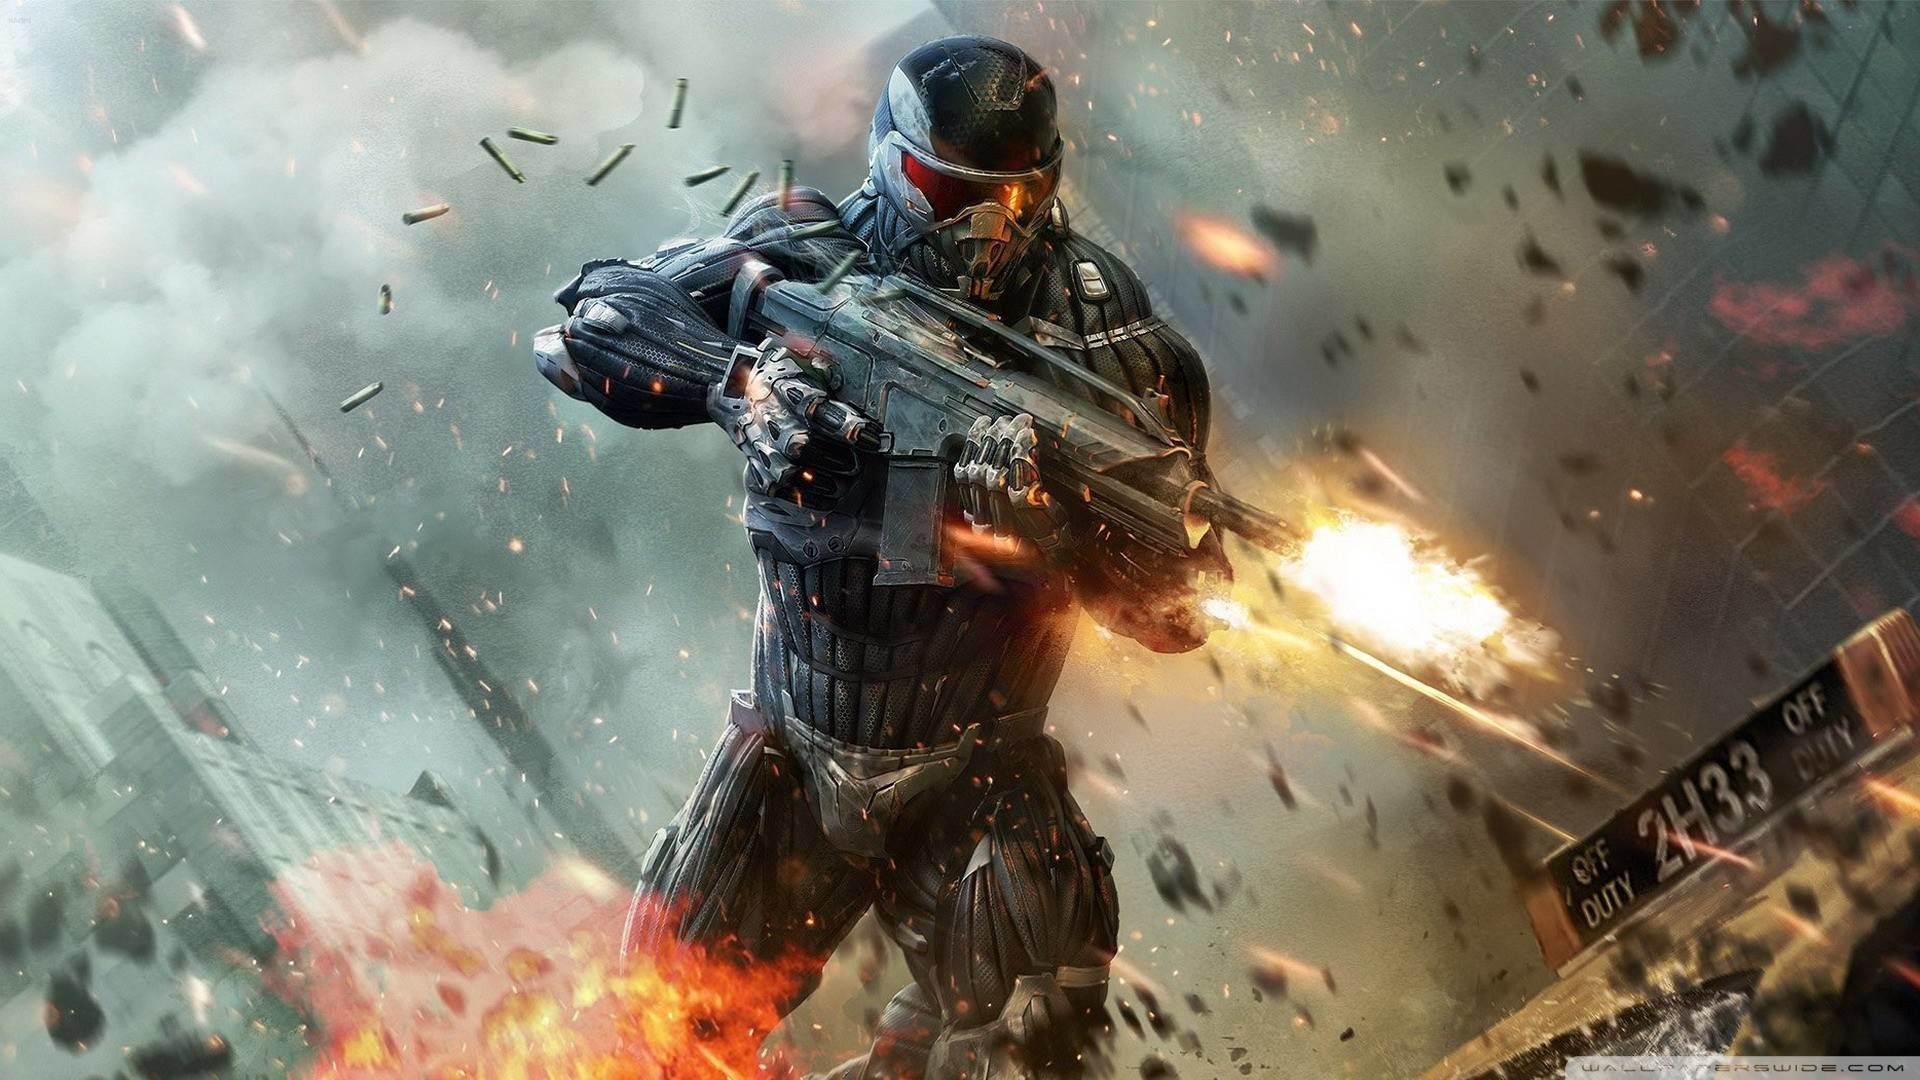 Res: 1920x1080, Action Games HD Pics for PC